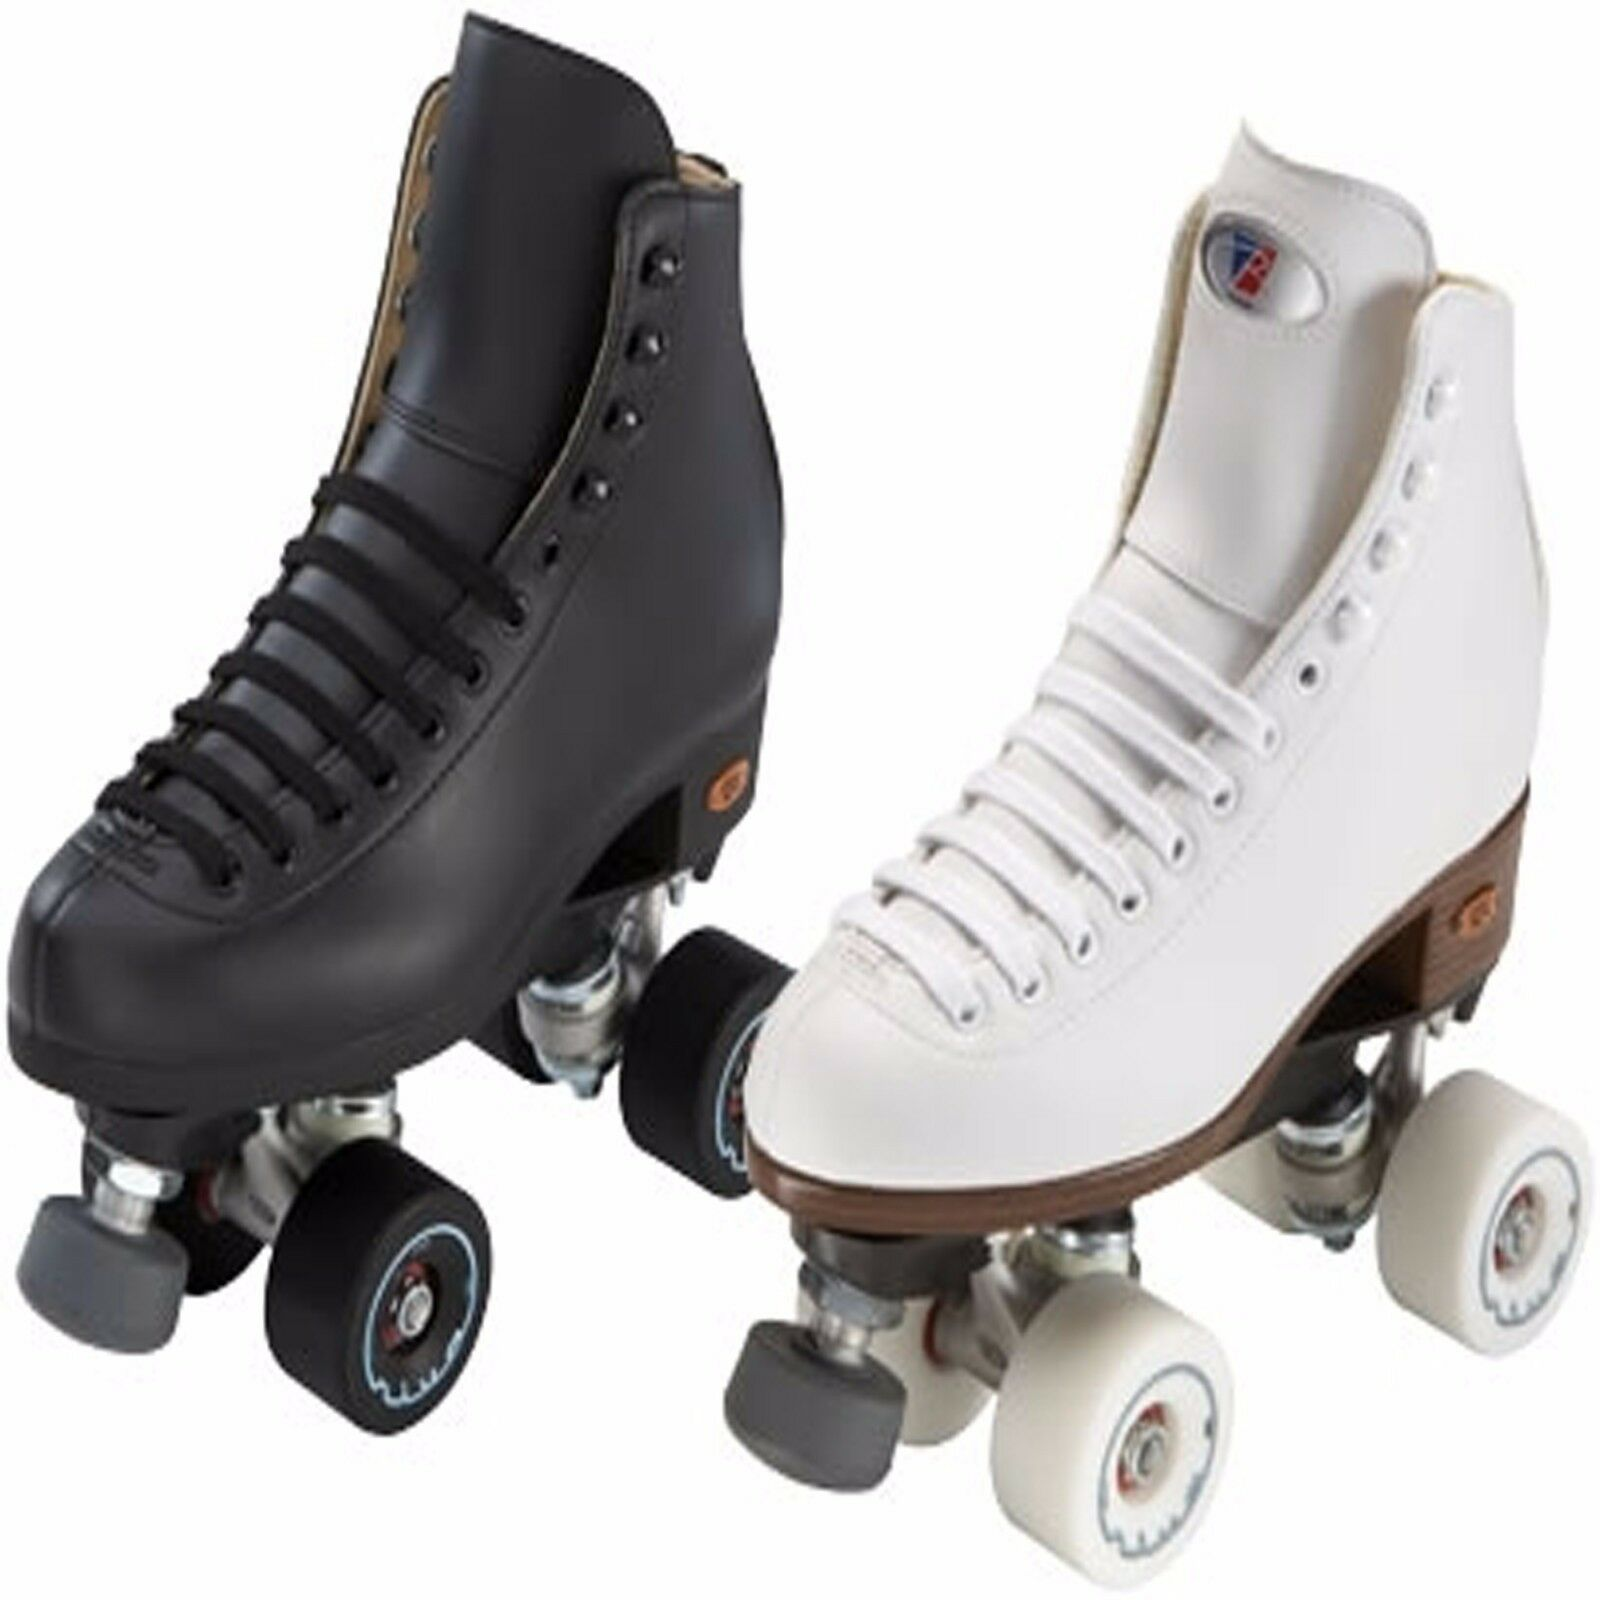 Riedell 111  With Riva Wheels Artistic Indoor Roller Rhythm Indoor Artistic Skates 7ed2c4